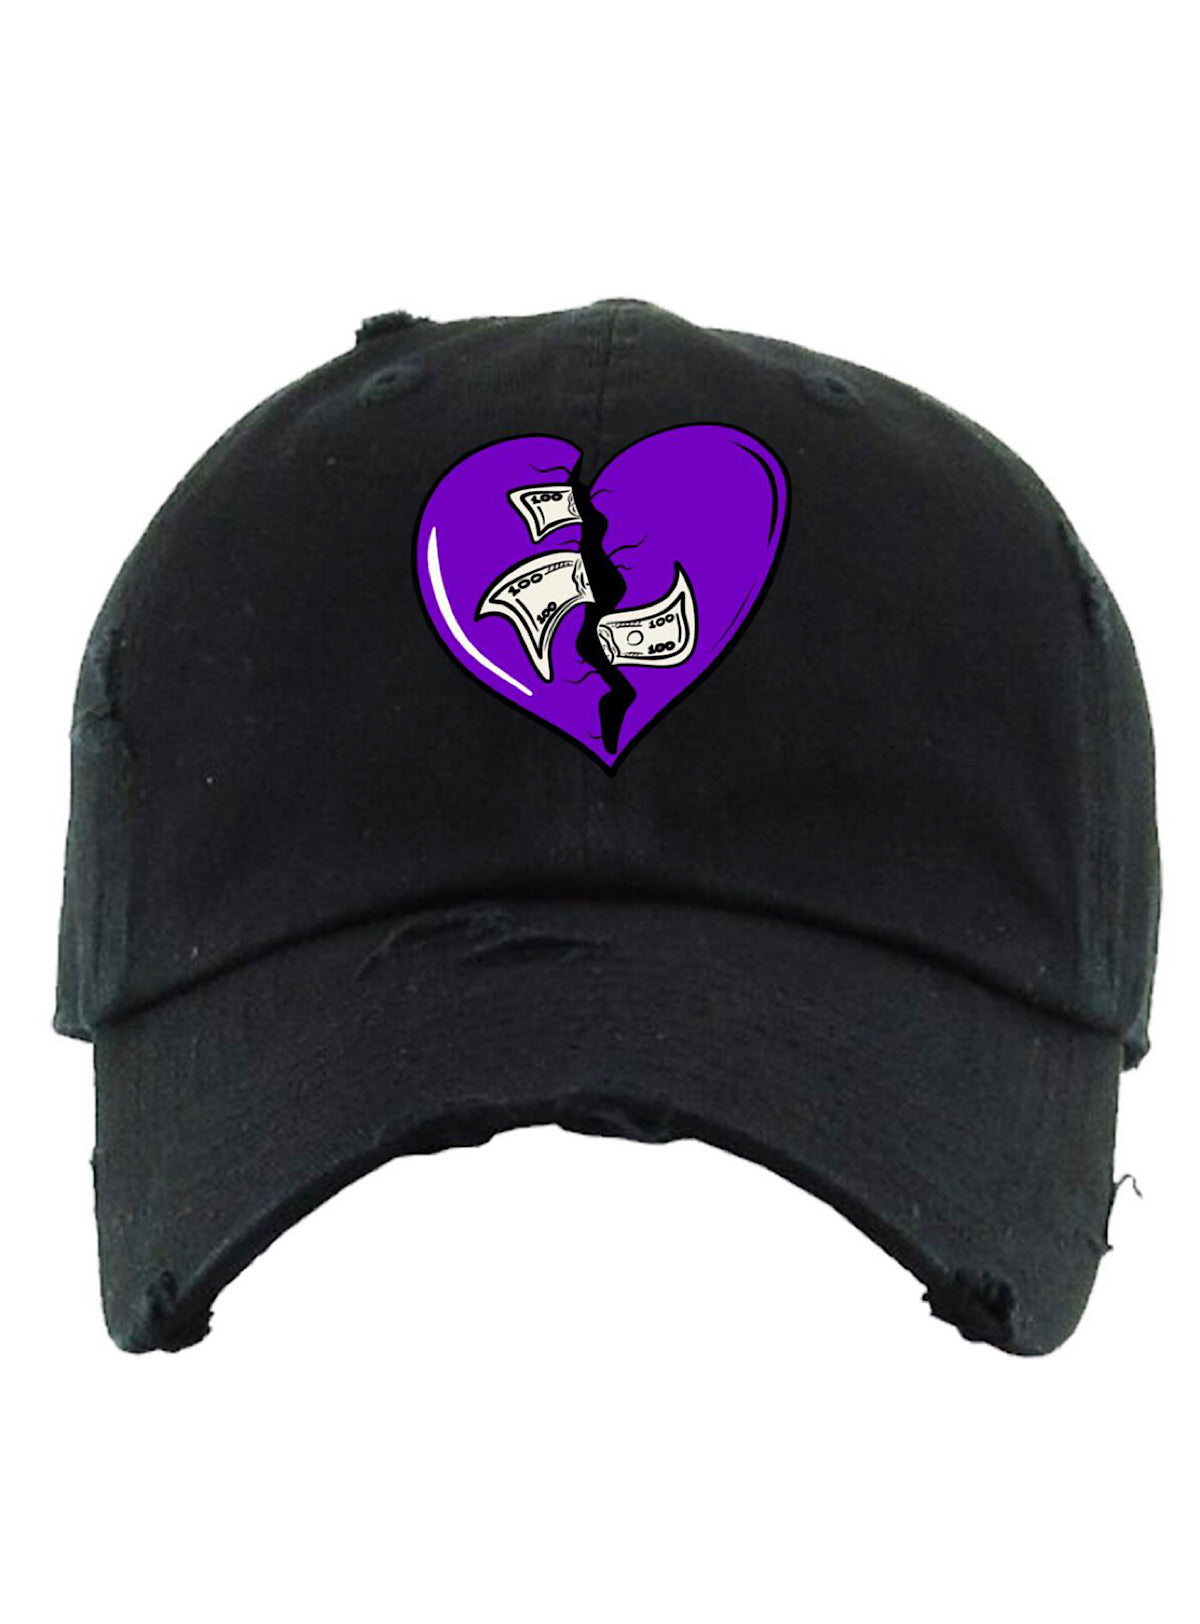 PG Apparel Hat - Heartless - Black and Purple